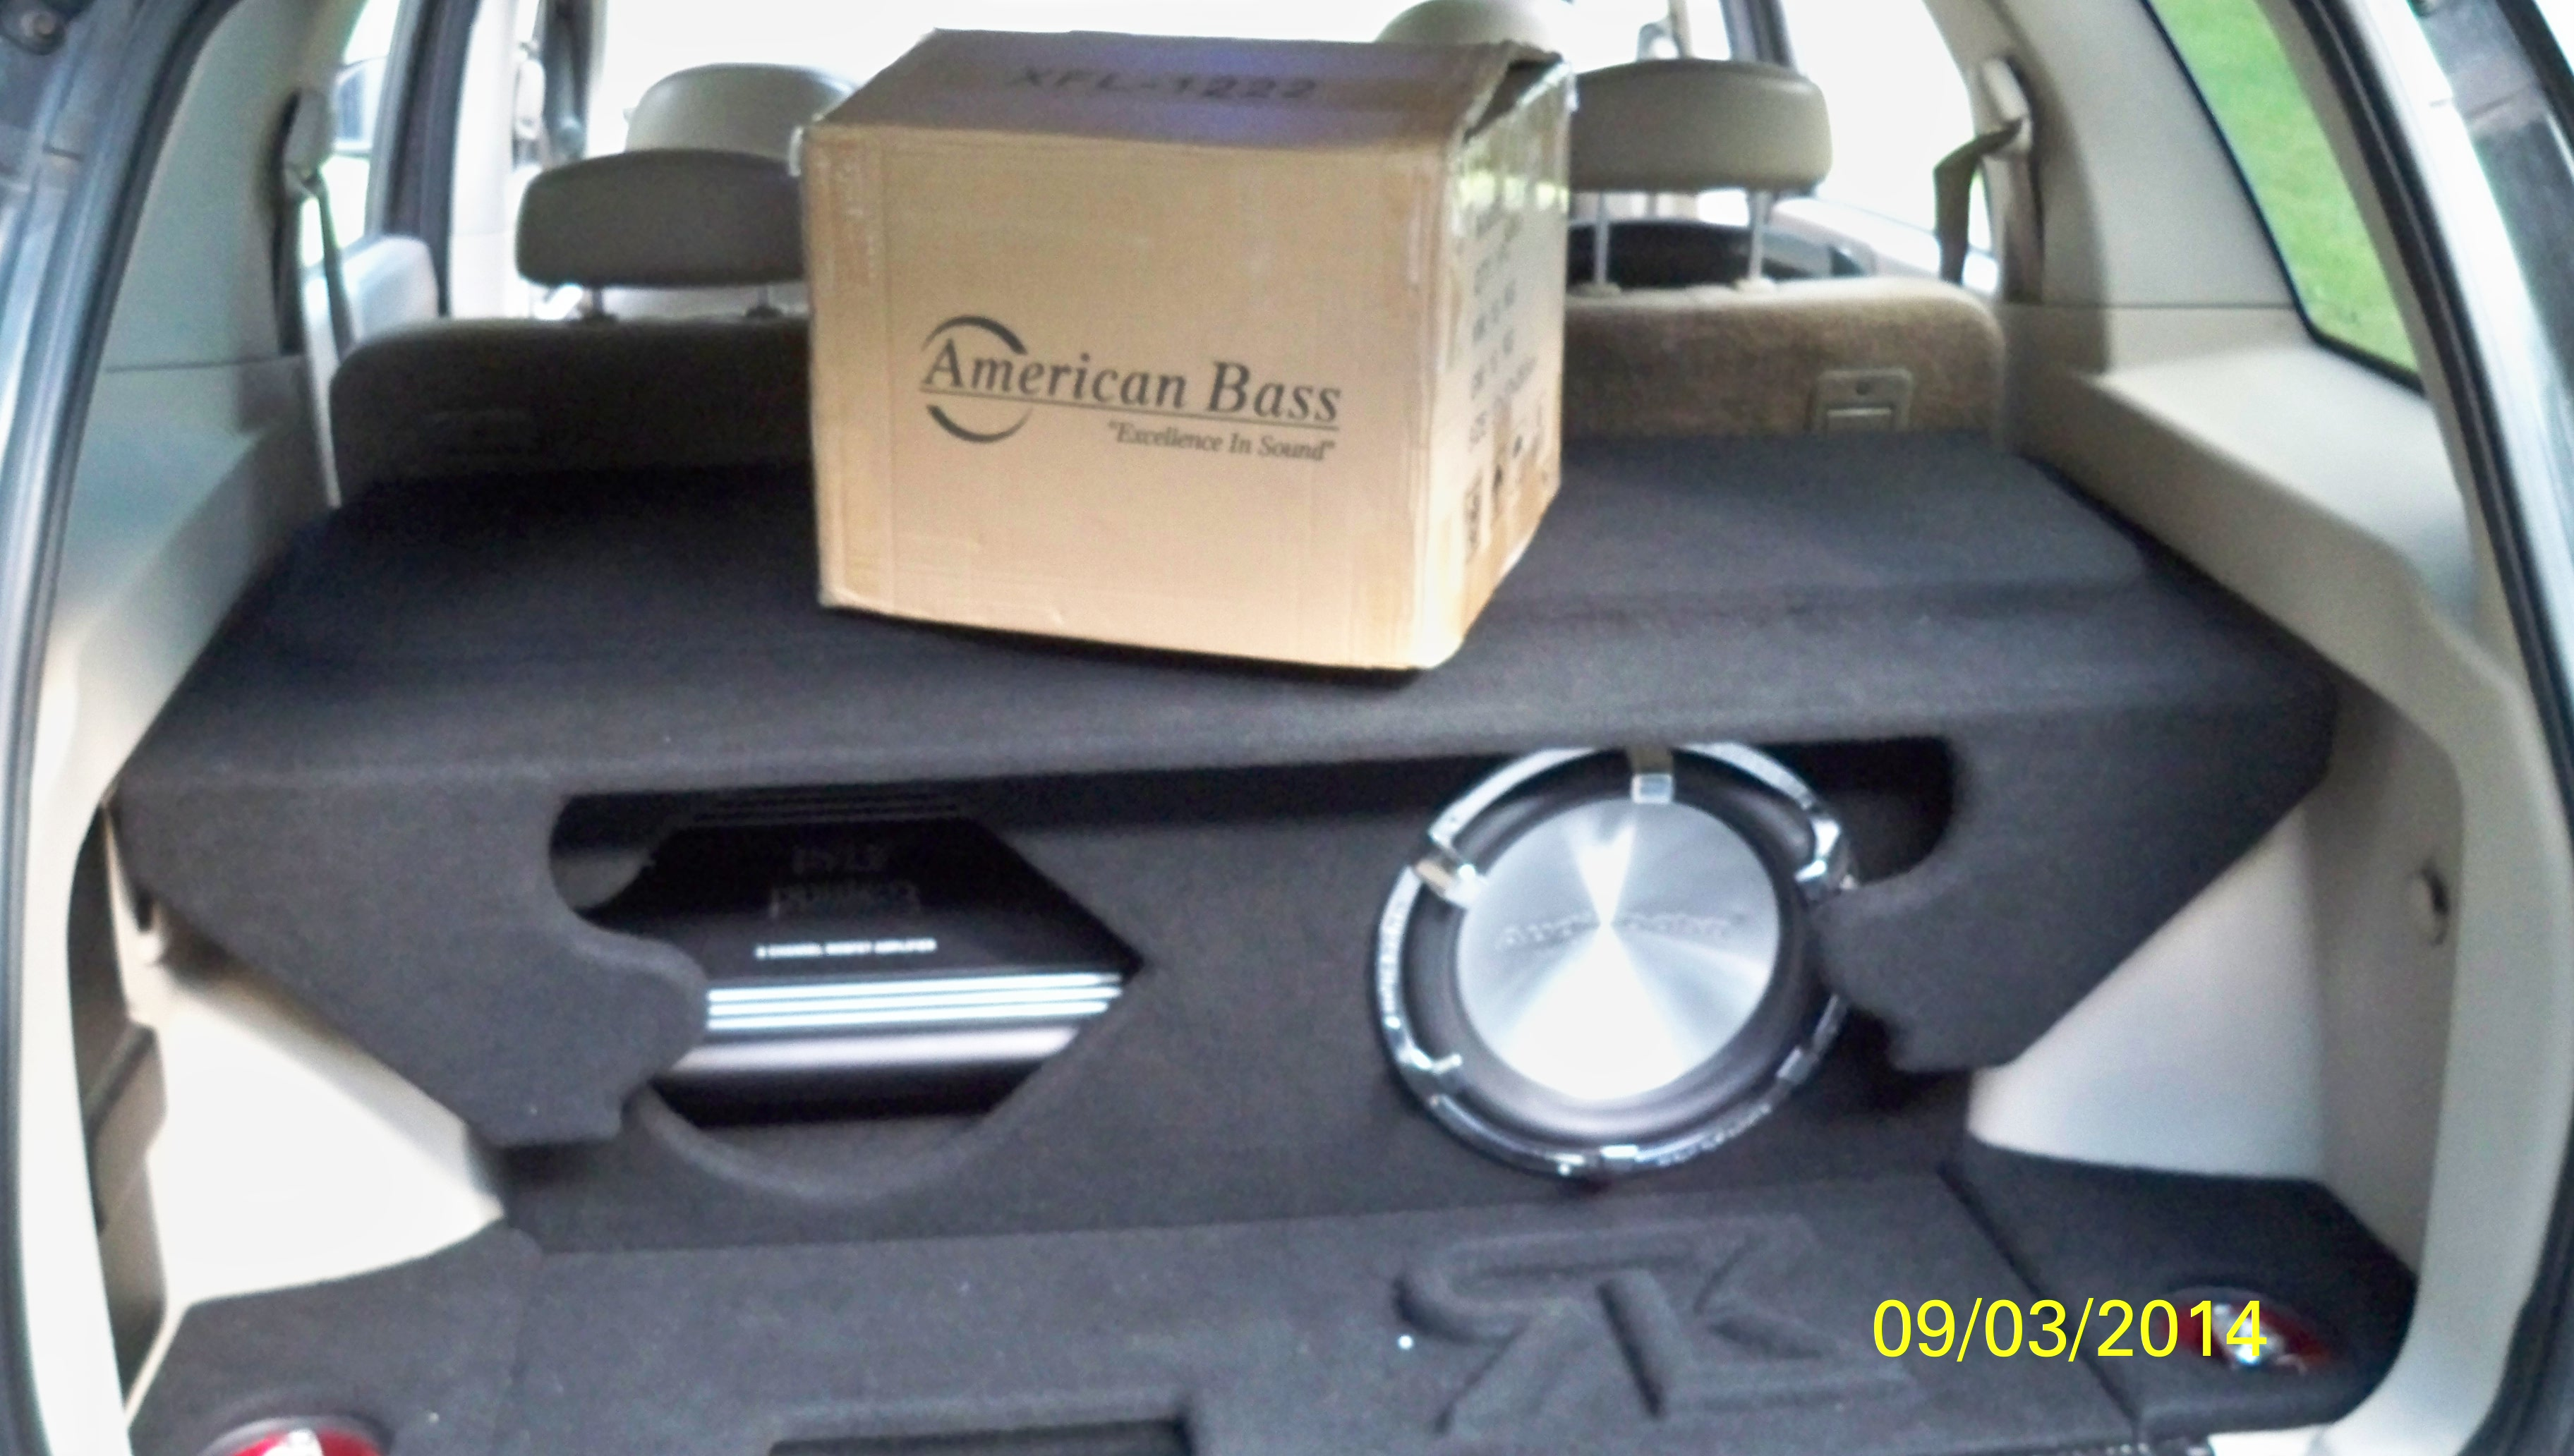 My 1st competition subwoofer has arrived. Its 39.8 LBS of pure American Bass. This subwoofer has a 220 oz. triple stacked magnet w/ dual 4-layer 3'' voicecoils.  - 19070820